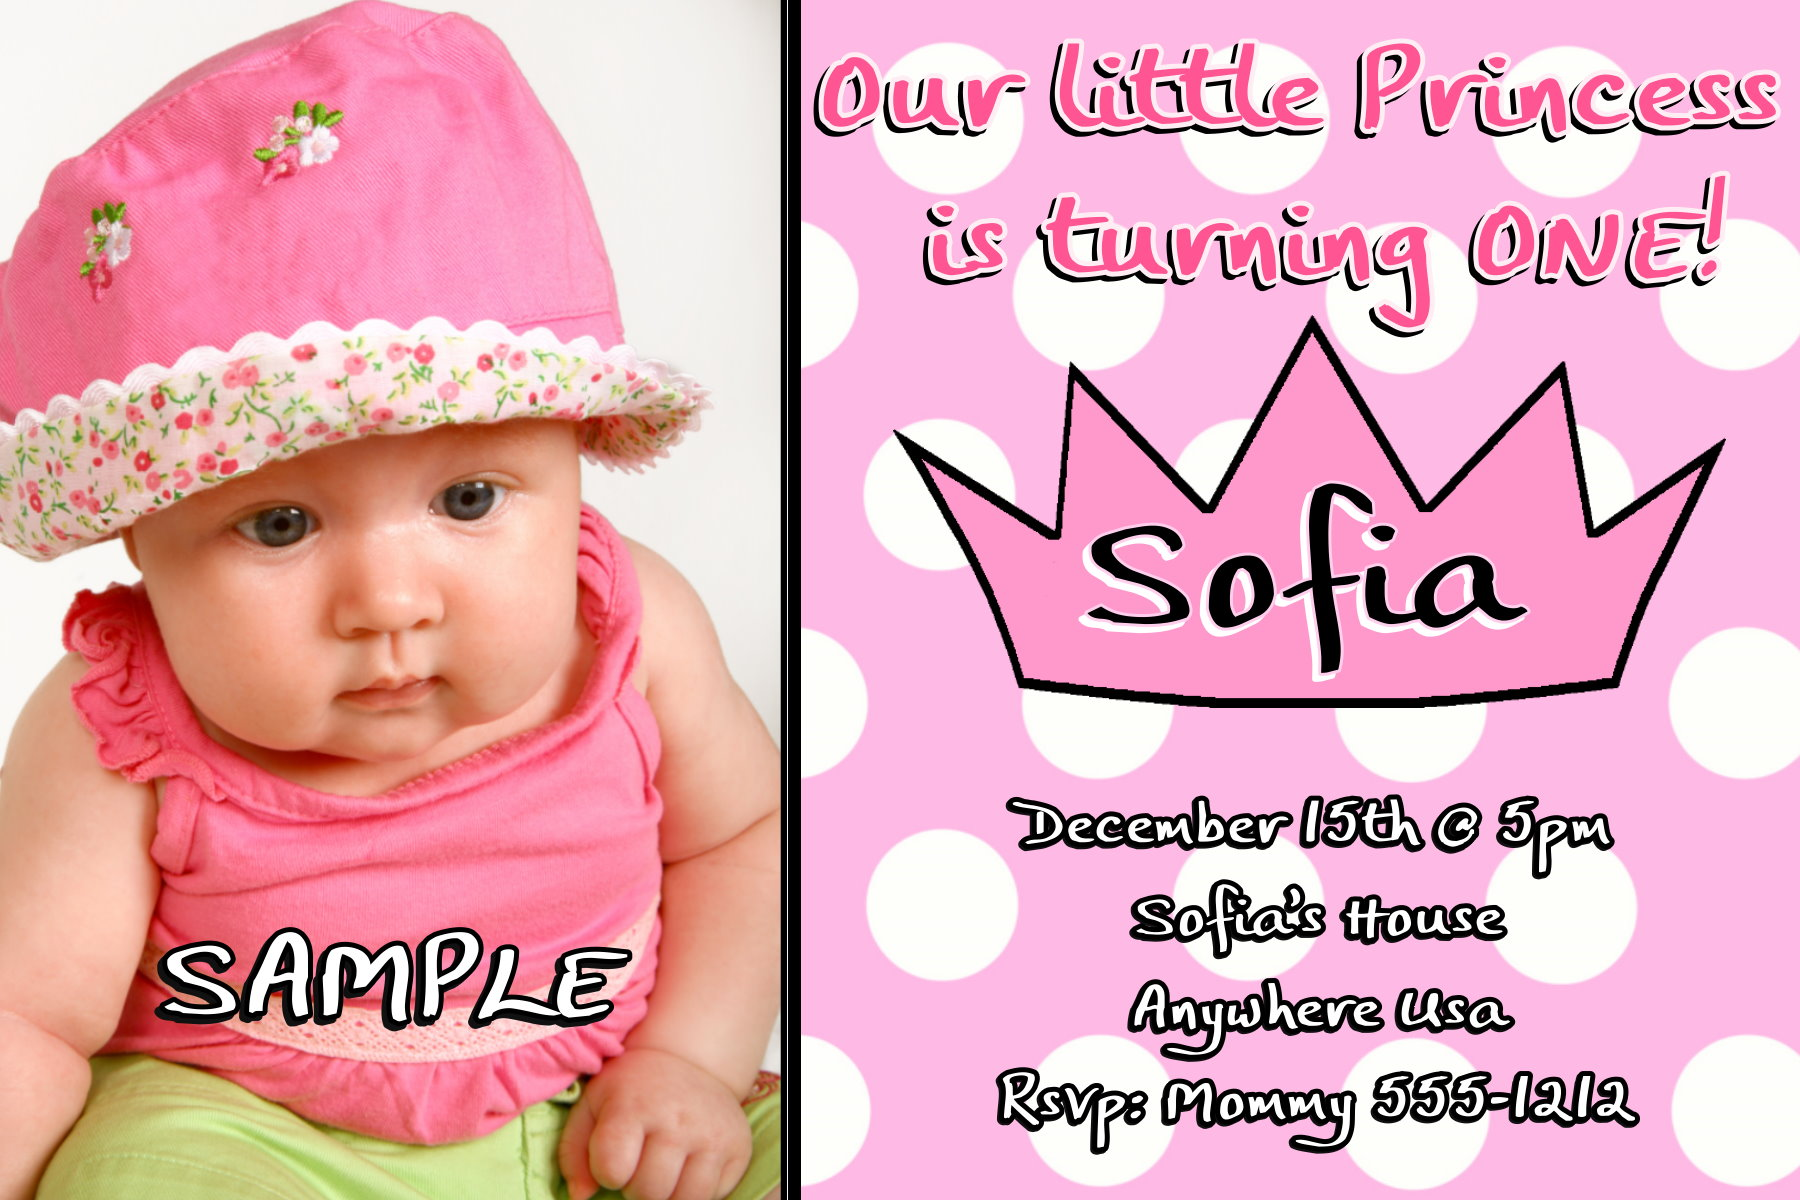 baby birthday invitation card template ; Interesting-Sample-1St-Birthday-Invitation-Card-36-In-Marriage-Invitation-Card-Template-Free-Download-with-Sample-1St-Birthday-Invitation-Card